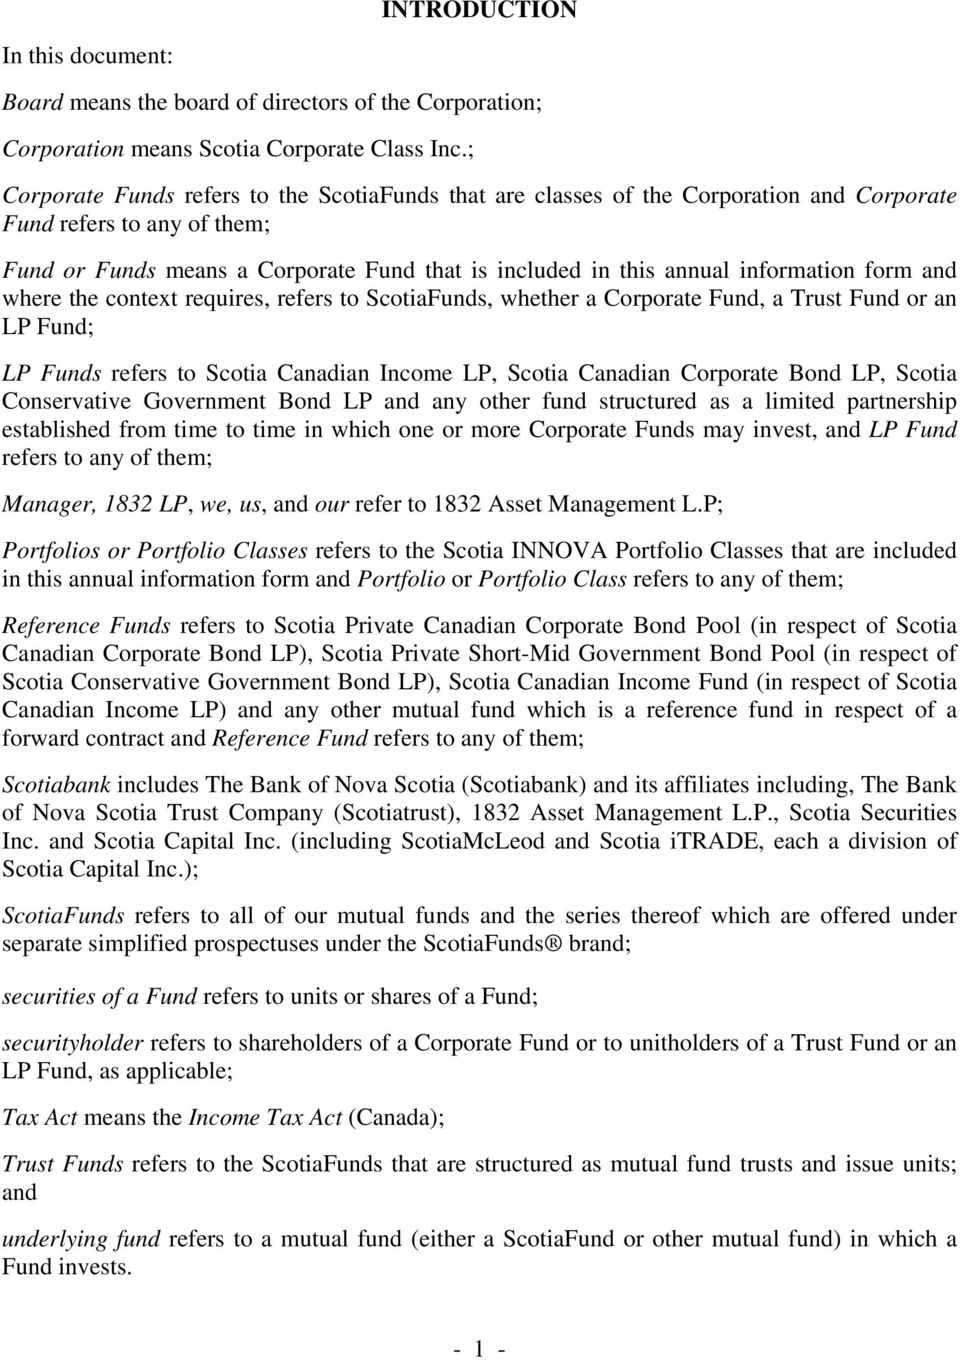 information form and where the context requires, refers to ScotiaFunds, whether a Corporate Fund, a Trust Fund or an LP Fund; LP Funds refers to Scotia Canadian Income LP, Scotia Canadian Corporate